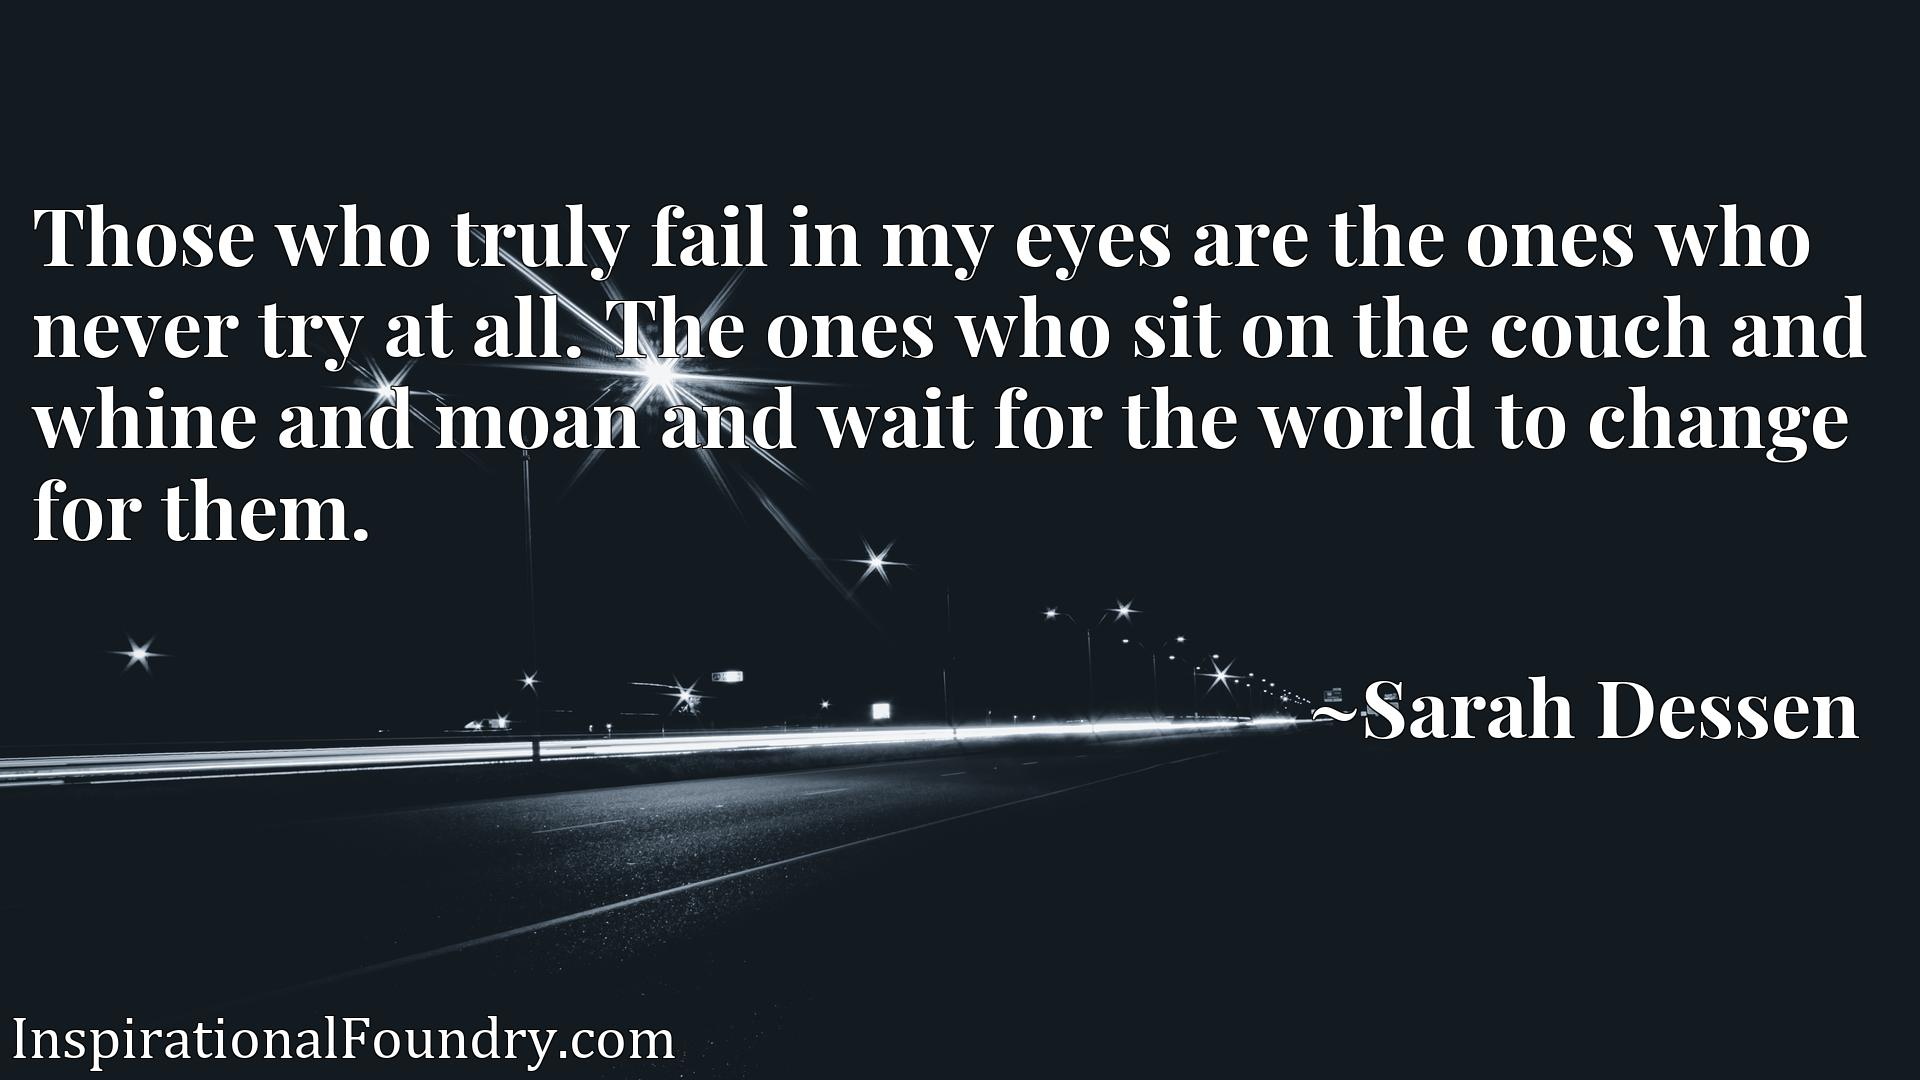 Those who truly fail in my eyes are the ones who never try at all. The ones who sit on the couch and whine and moan and wait for the world to change for them.